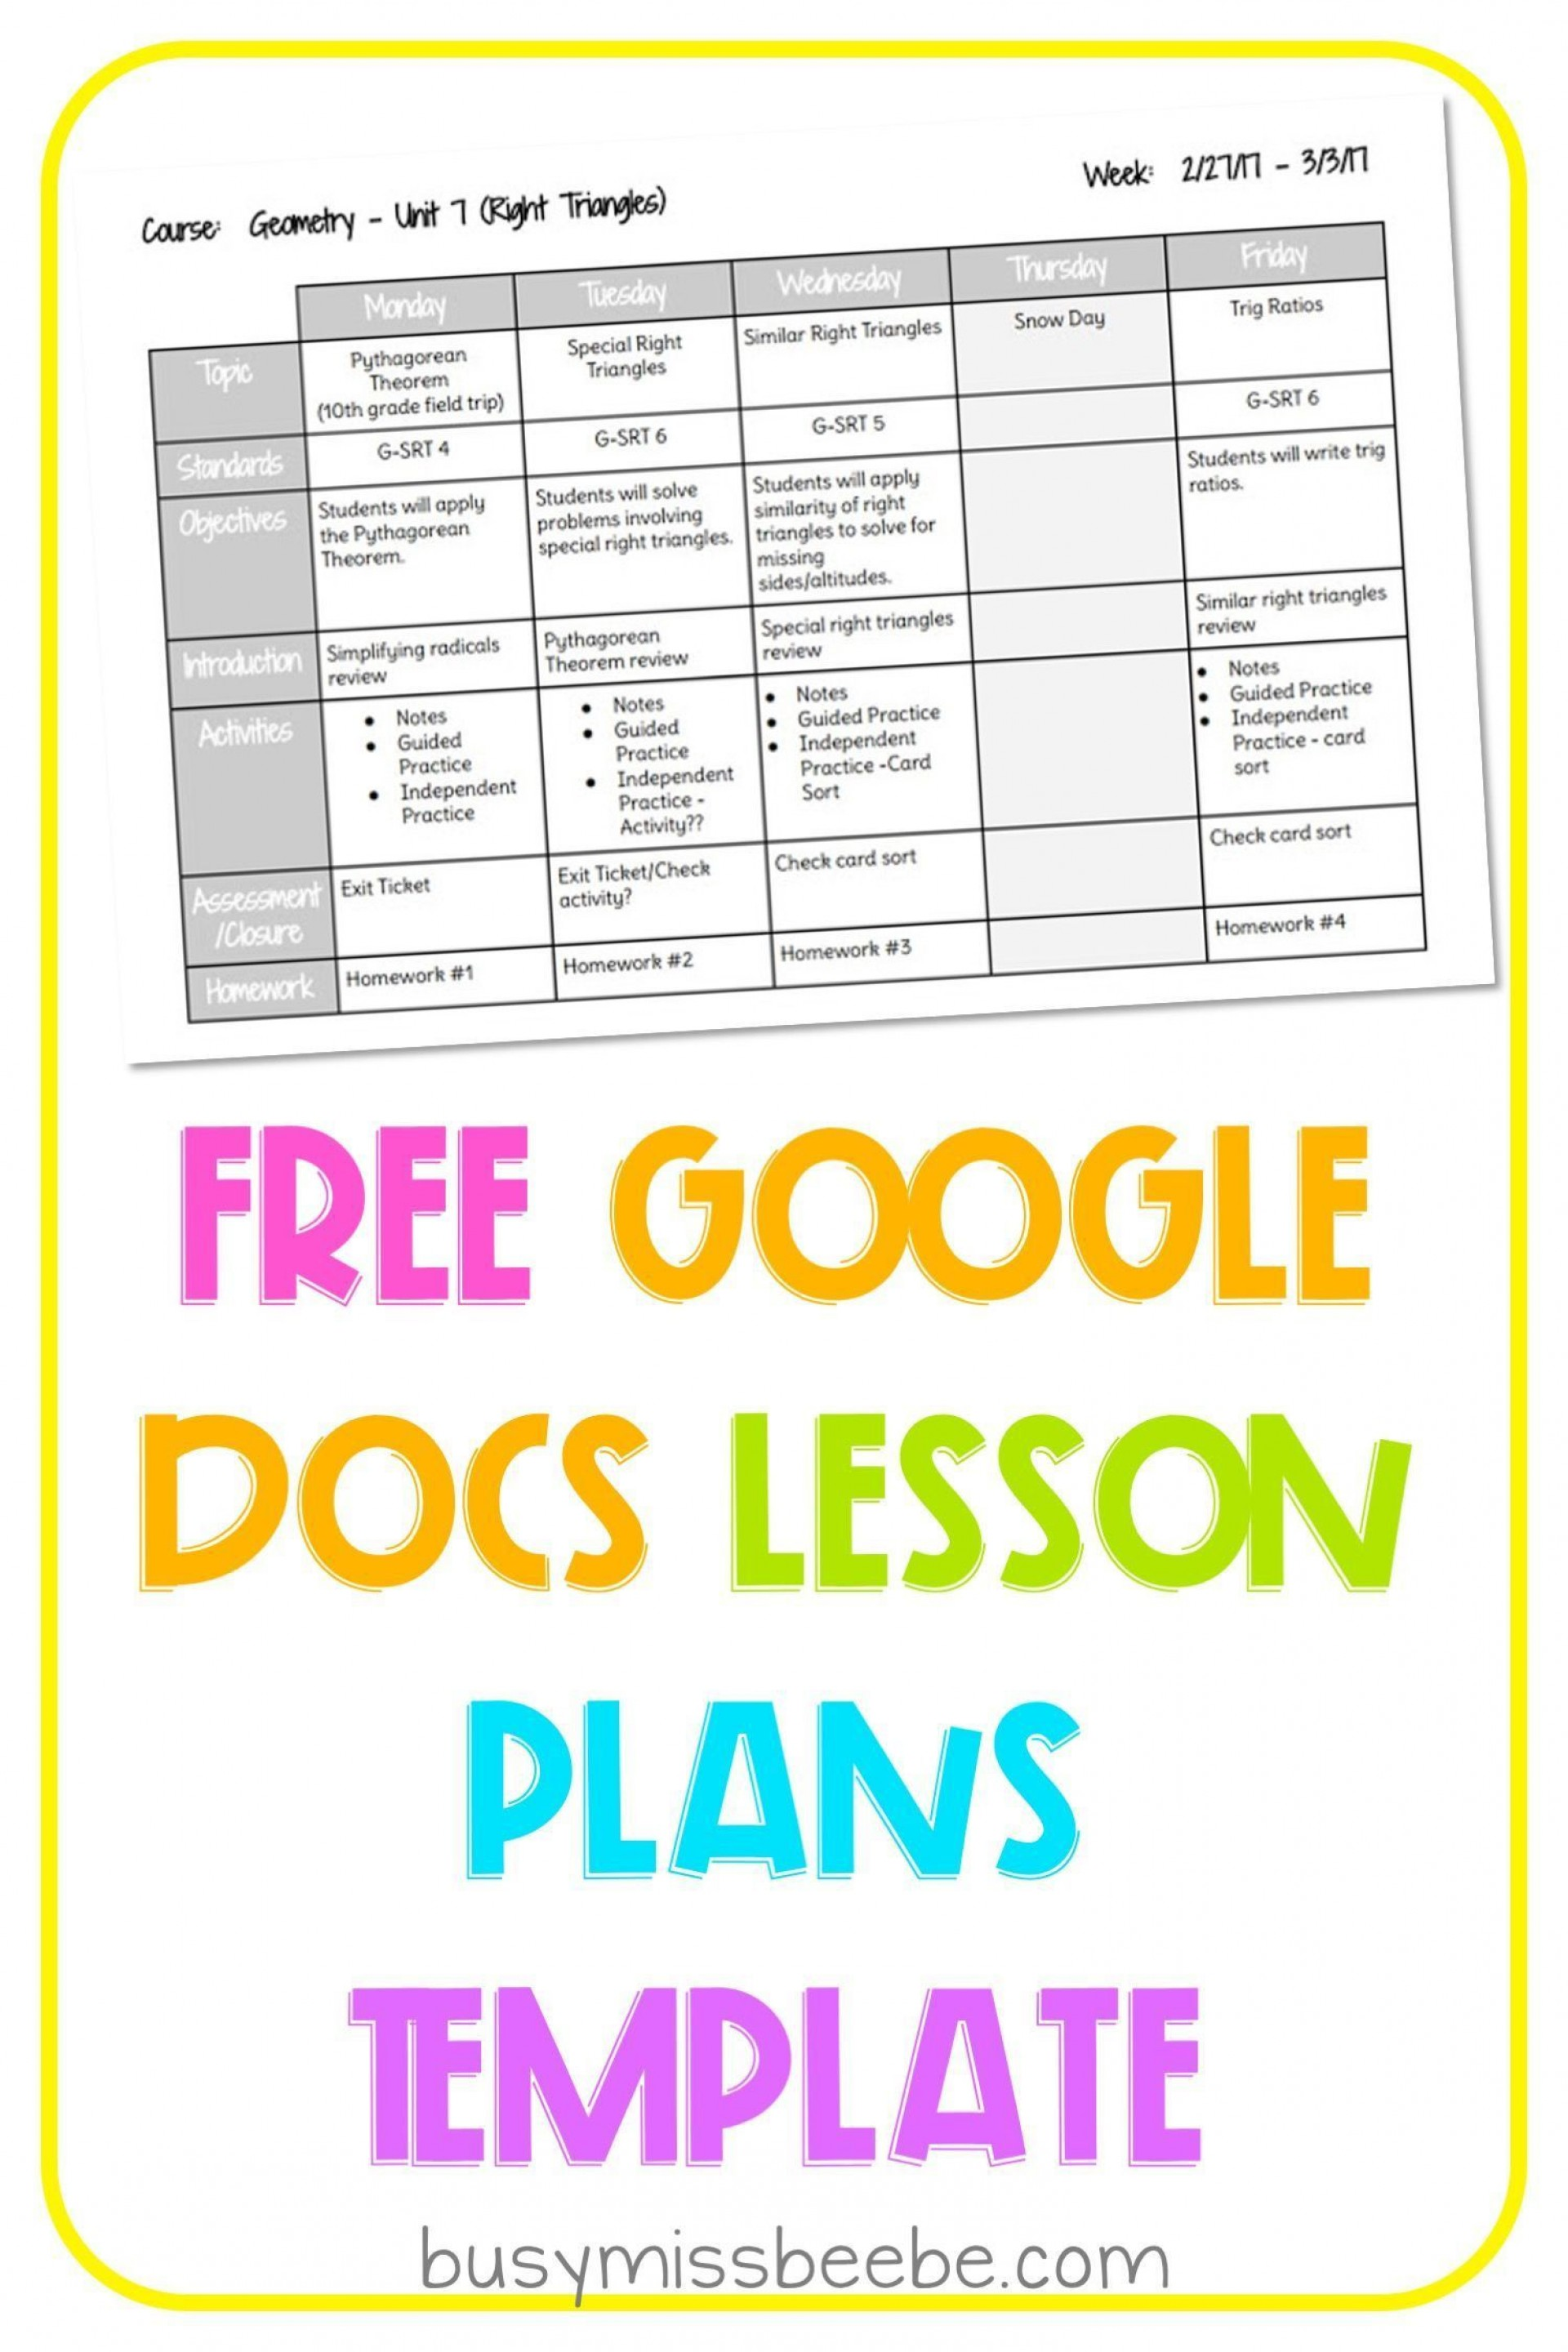 000 Best Weekly Lesson Plan Template Google Doc Free High Resolution 1920